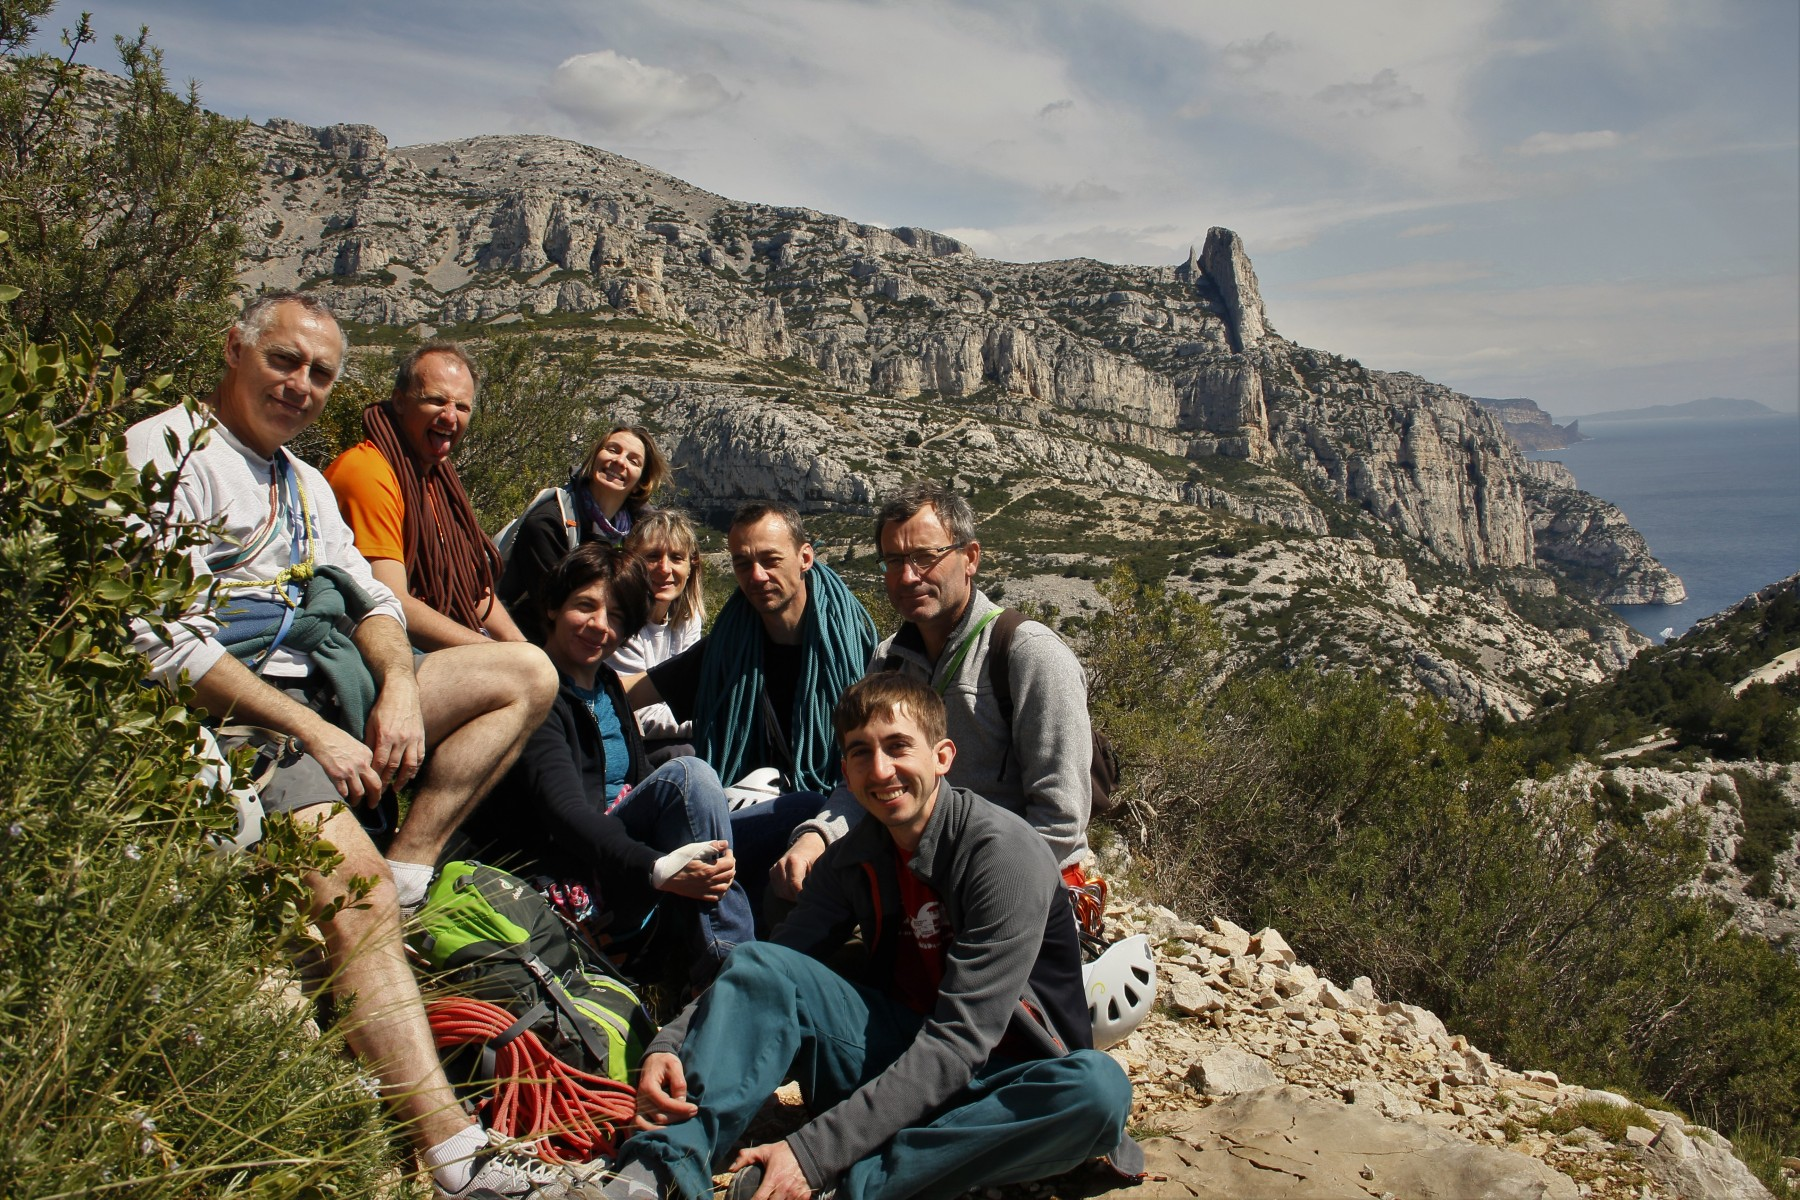 Les calanques avril 16 (19)